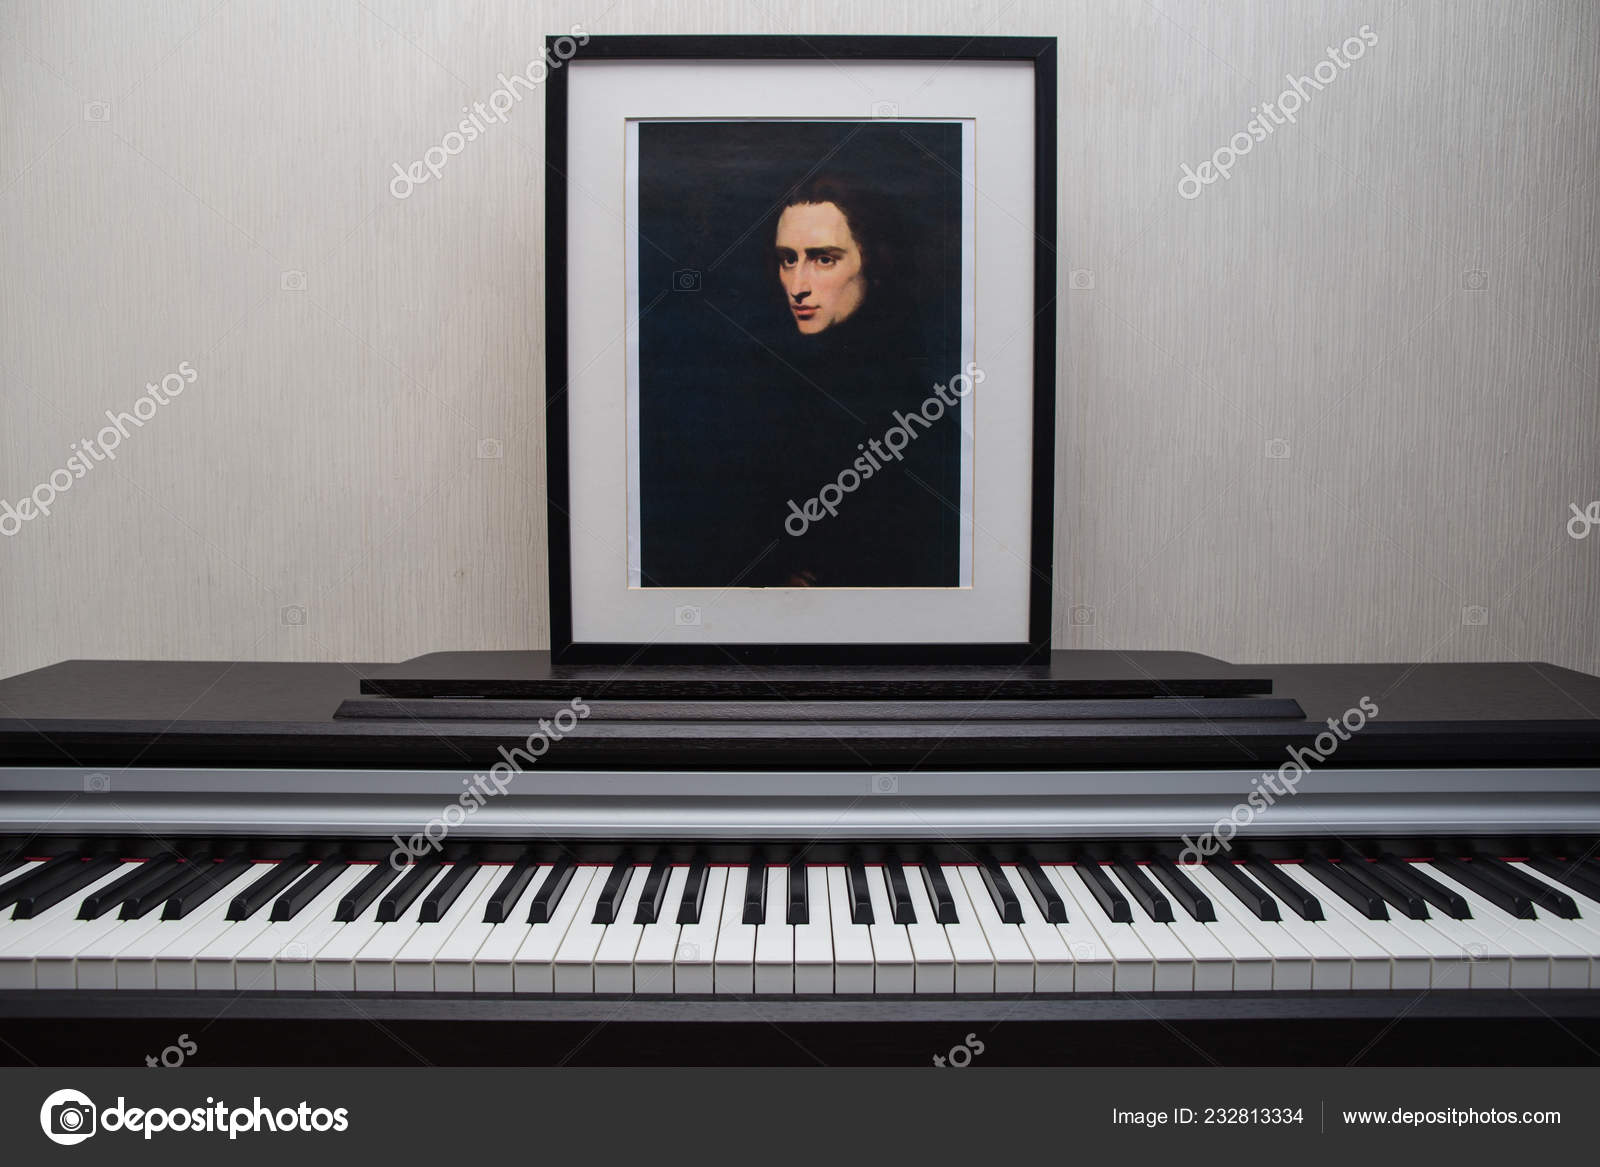 2018 Moscow Russia Liszt Portrait Piano Composition Composer